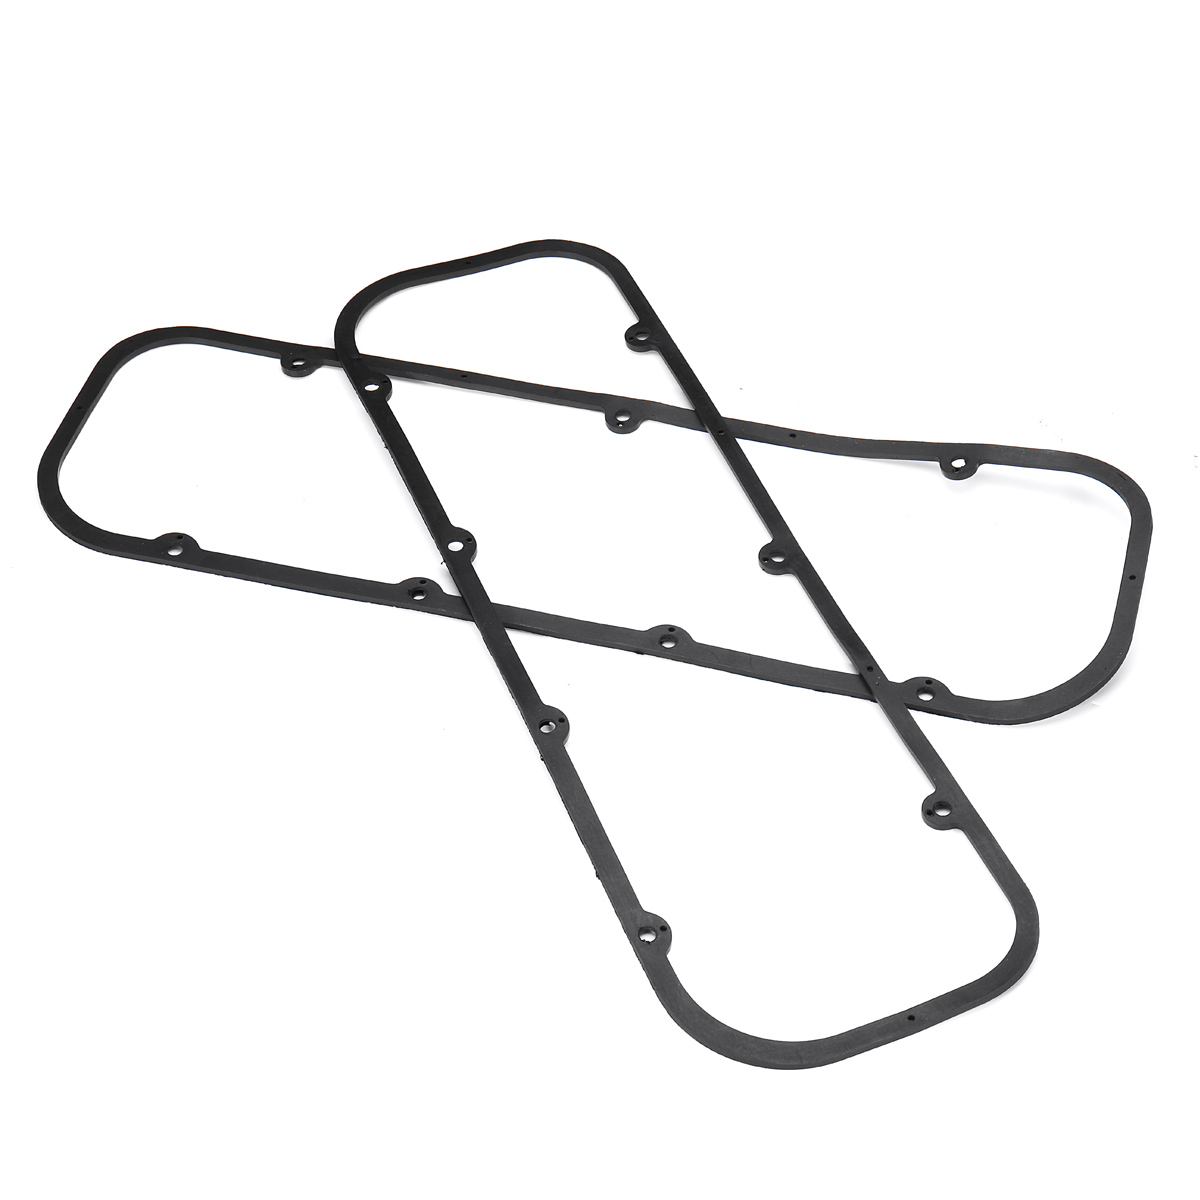 1 Pairs Valve cover gaskets for CHEVY 396 427 454 472 502